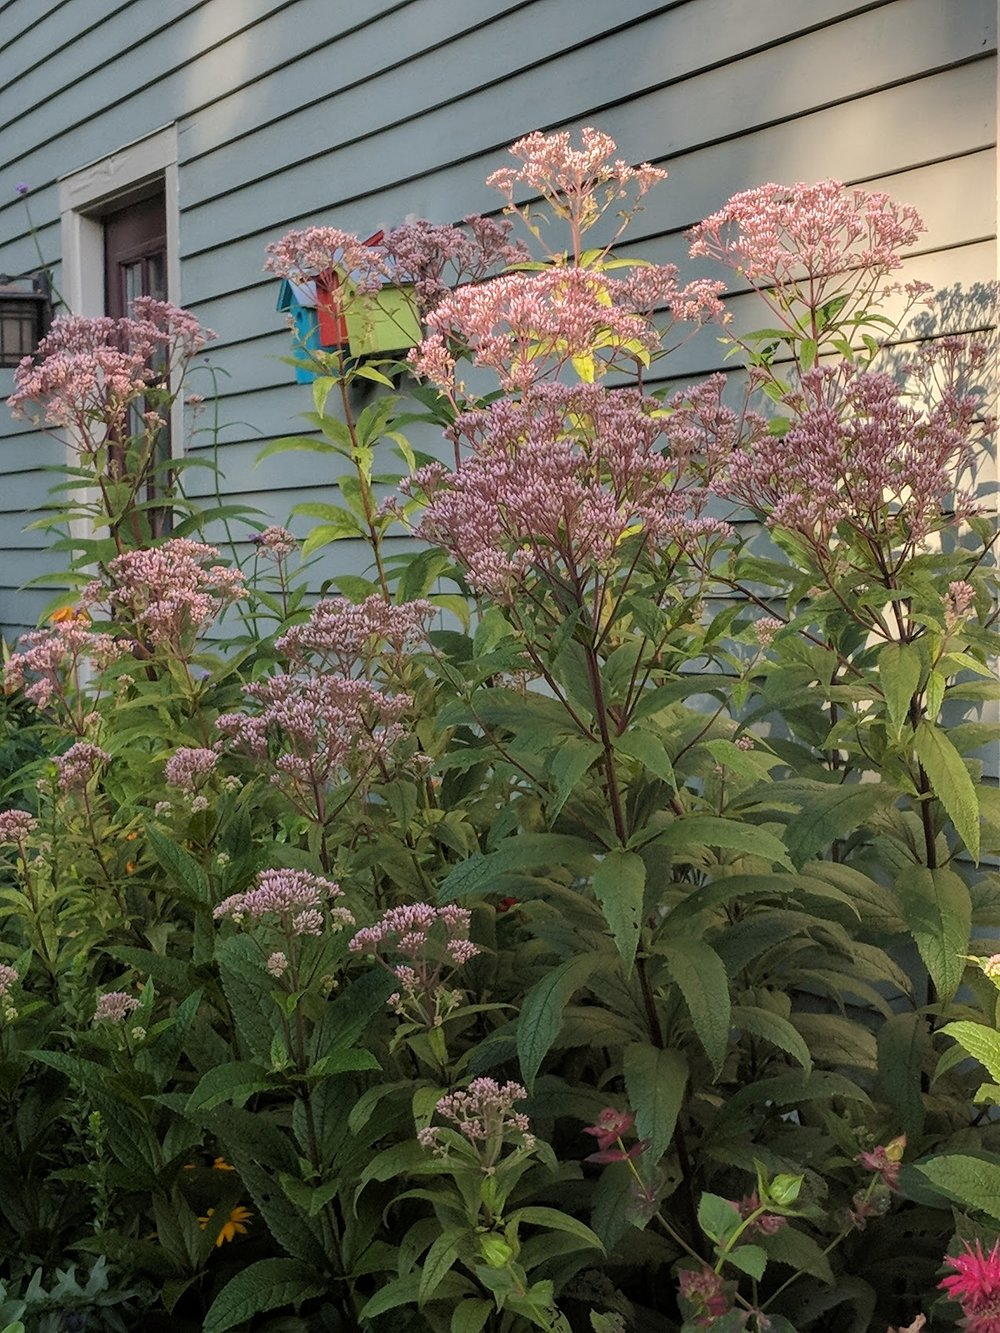 Joe Pye Weed inflorescence